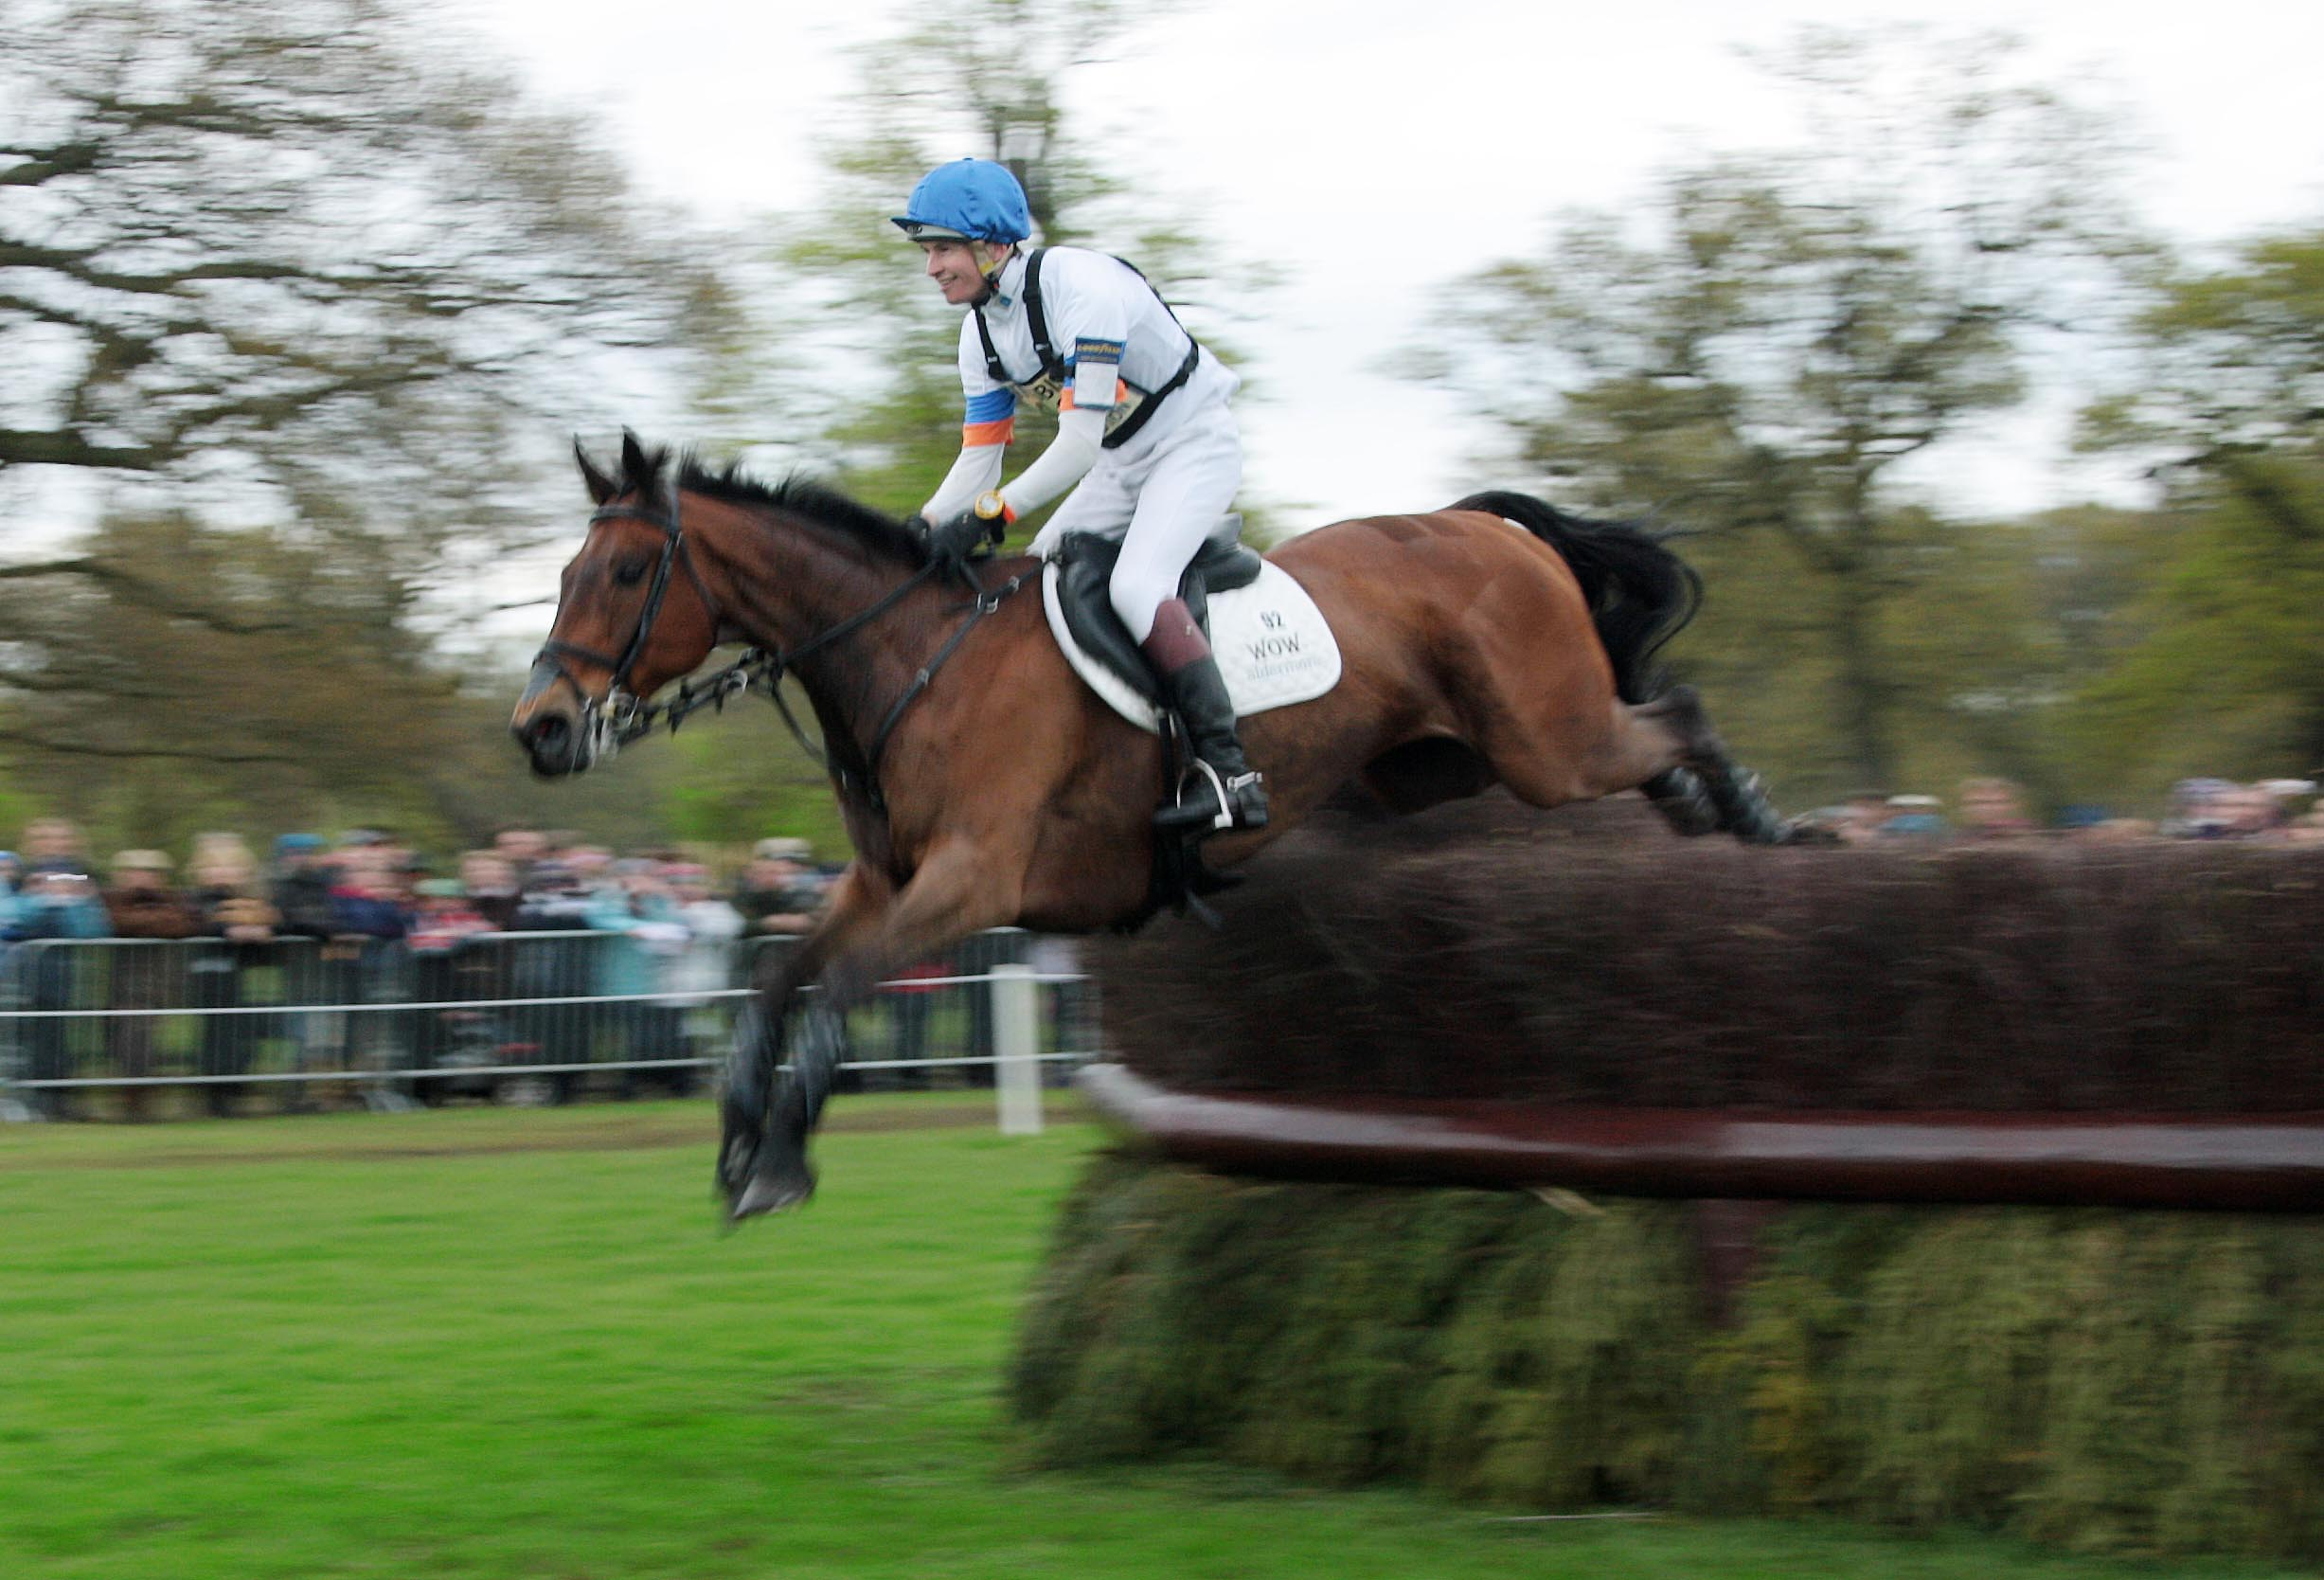 Francis Whittington / SIR PRECIVAL en Badminton